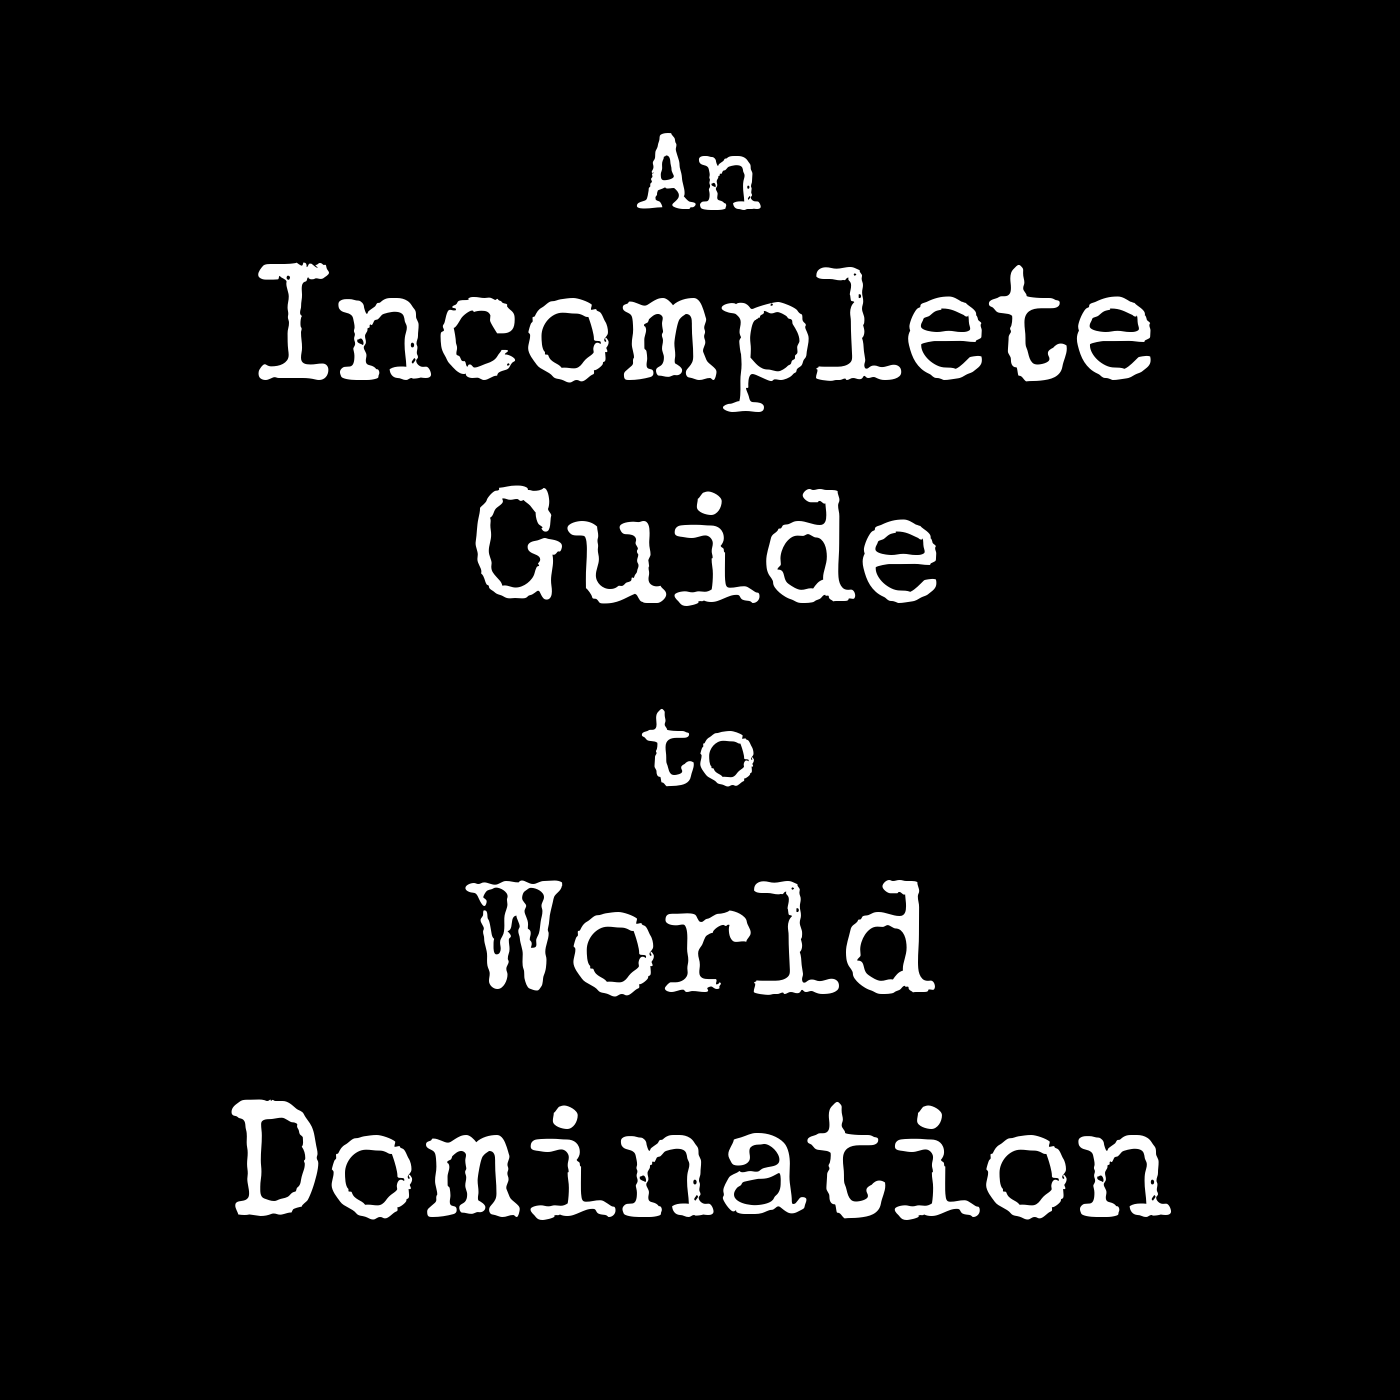 An Incomplete Guide to World Domination show image